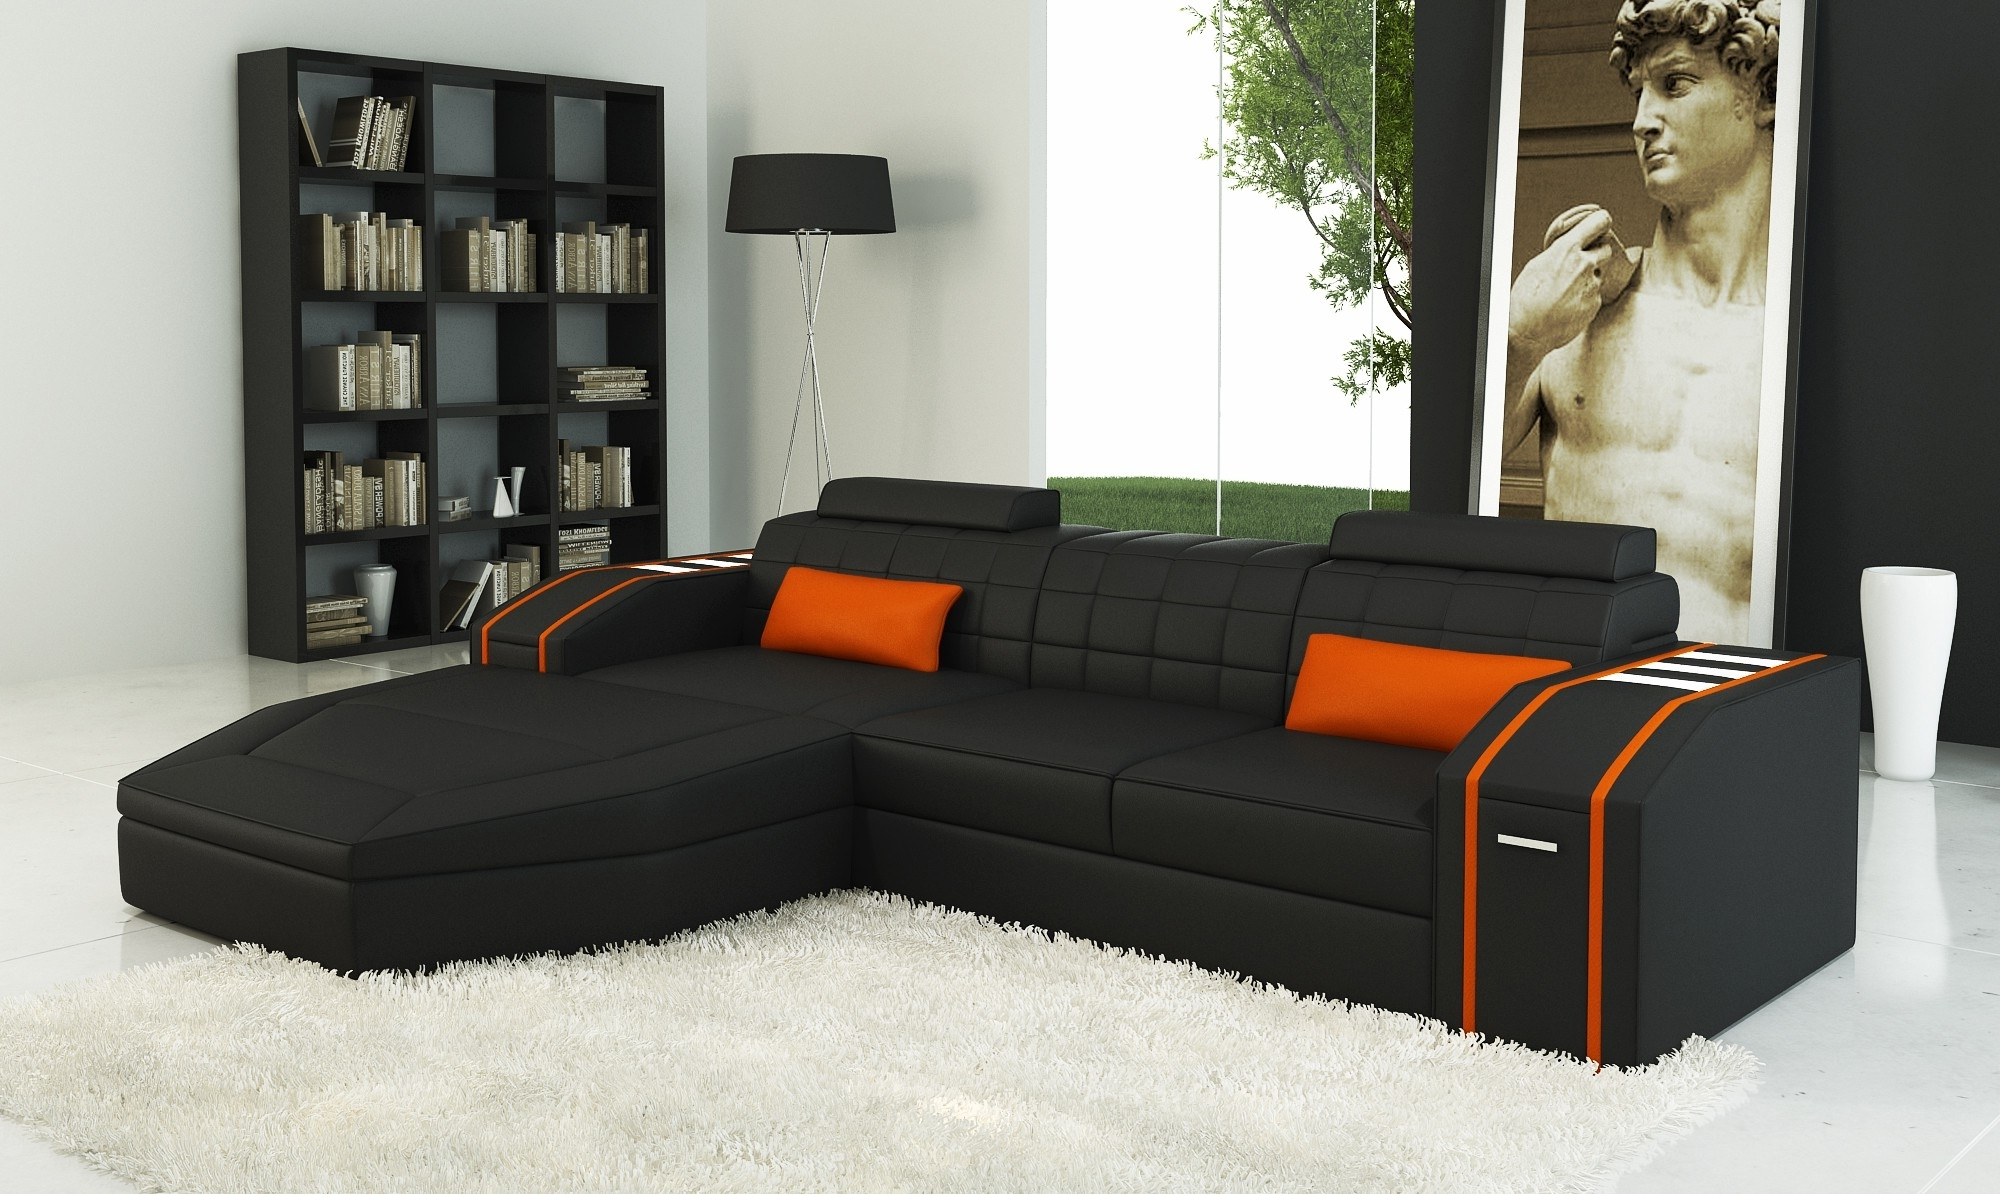 Recent Cheap Black Sofas Intended For Sofa: Extraordinary Cheap Black Sofa Black Furniture Bedroom (View 4 of 15)